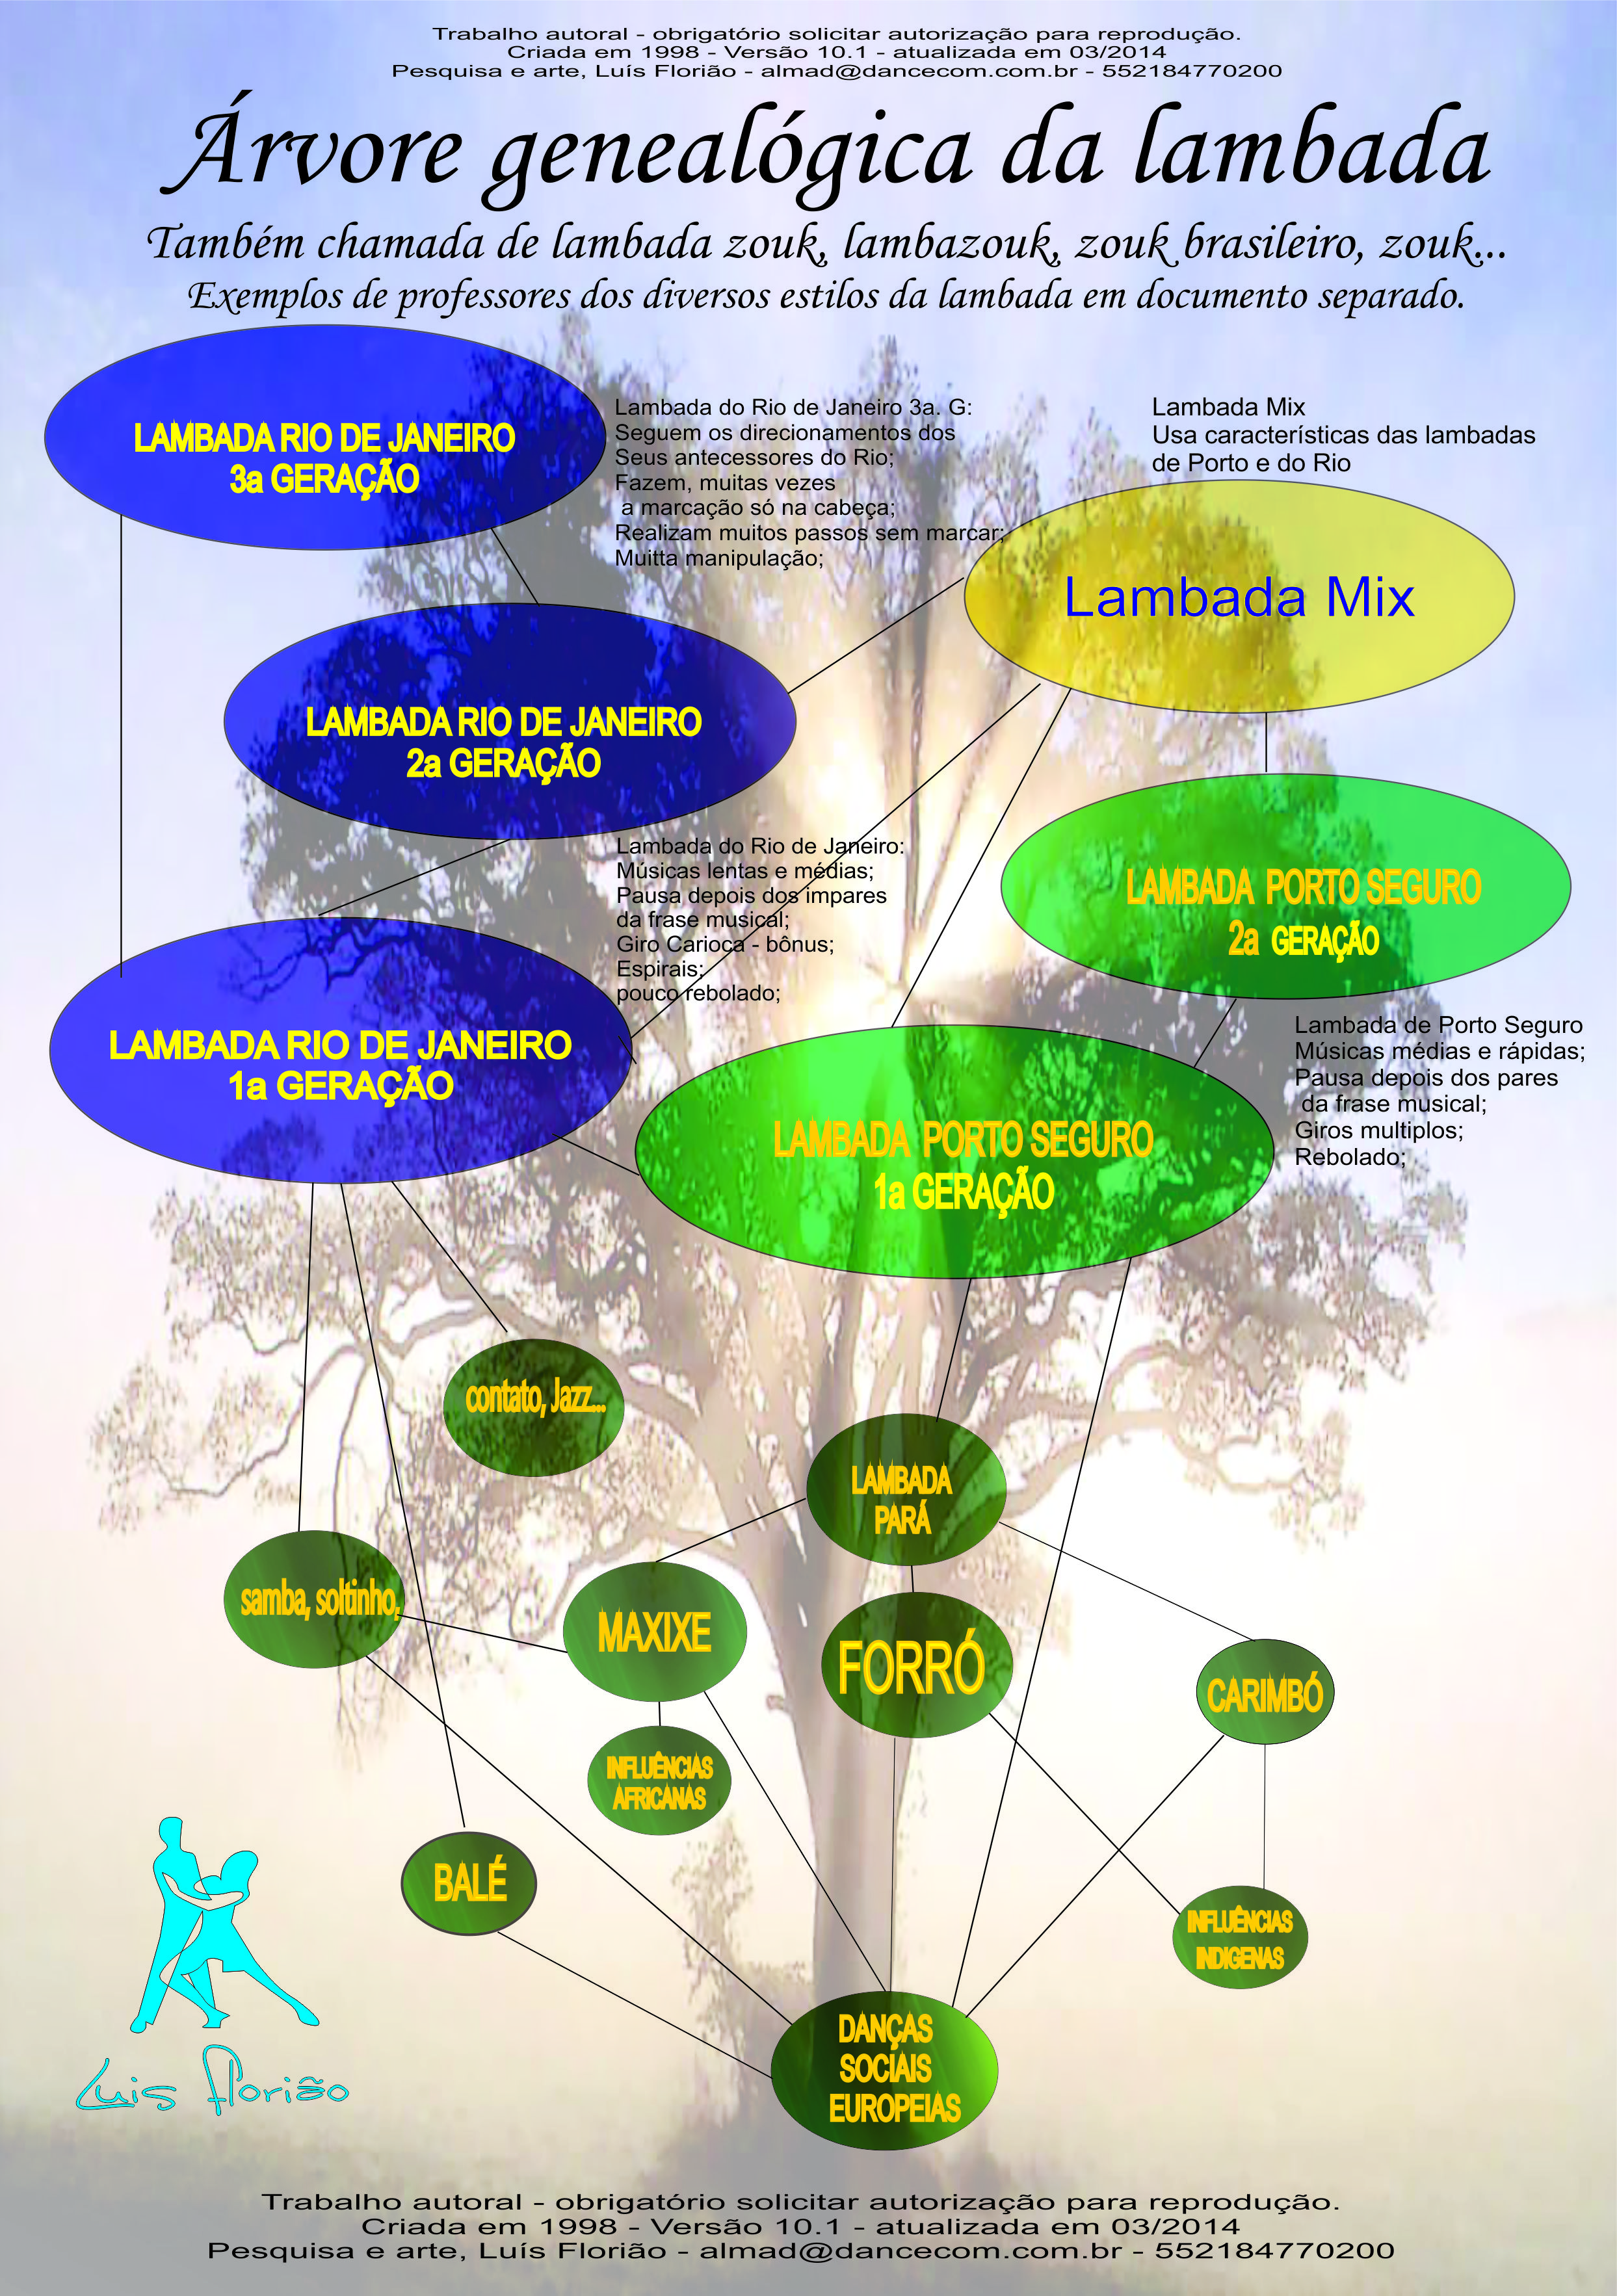 Genealogical tree of lambada-- courtesy Luis Floriao.